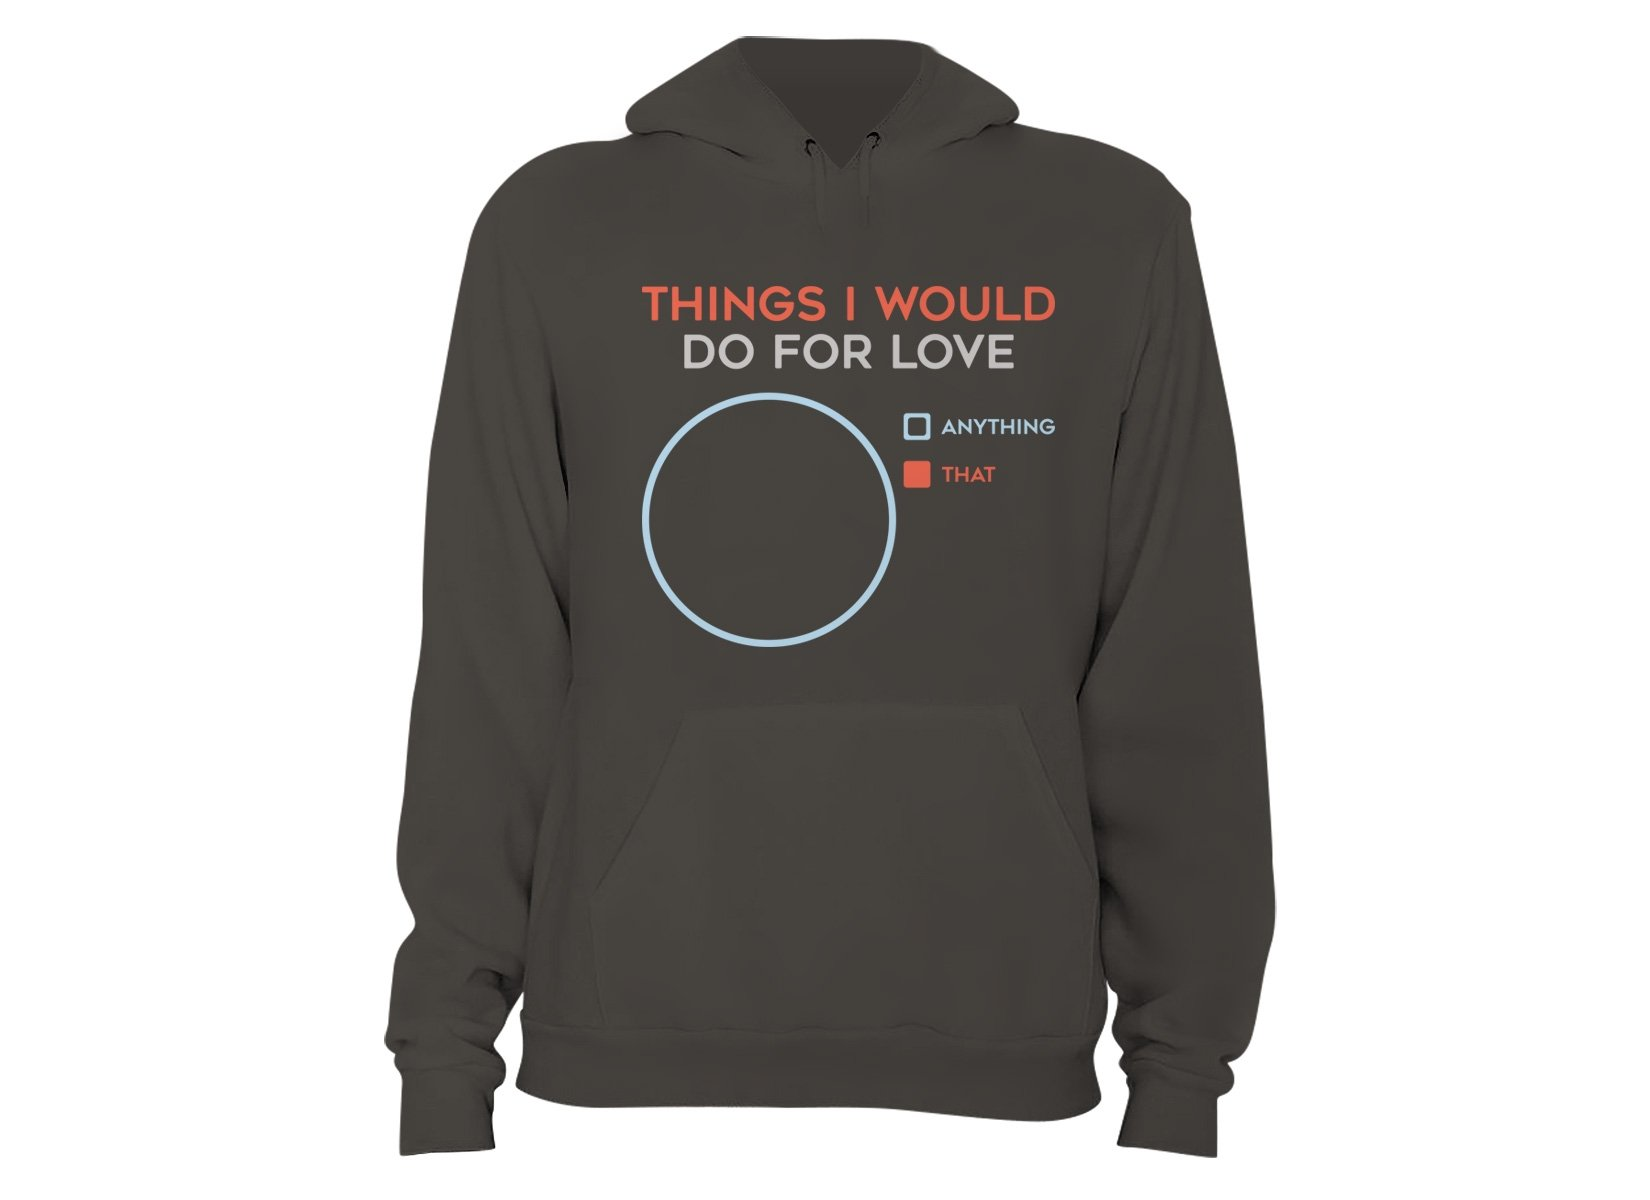 Things I Would Do For Love on Hoodie